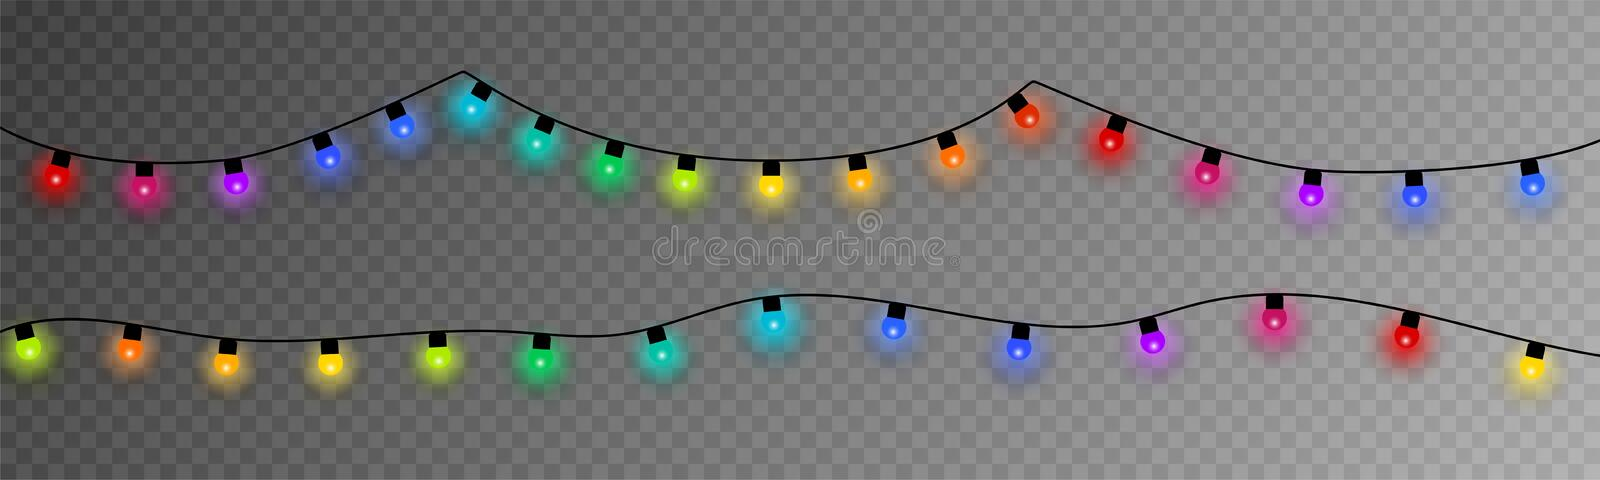 Colorful Christmas Lights. Eps10. Colorful Christmas Lights. Christmas light on transparent background. Vector illustration royalty free illustration